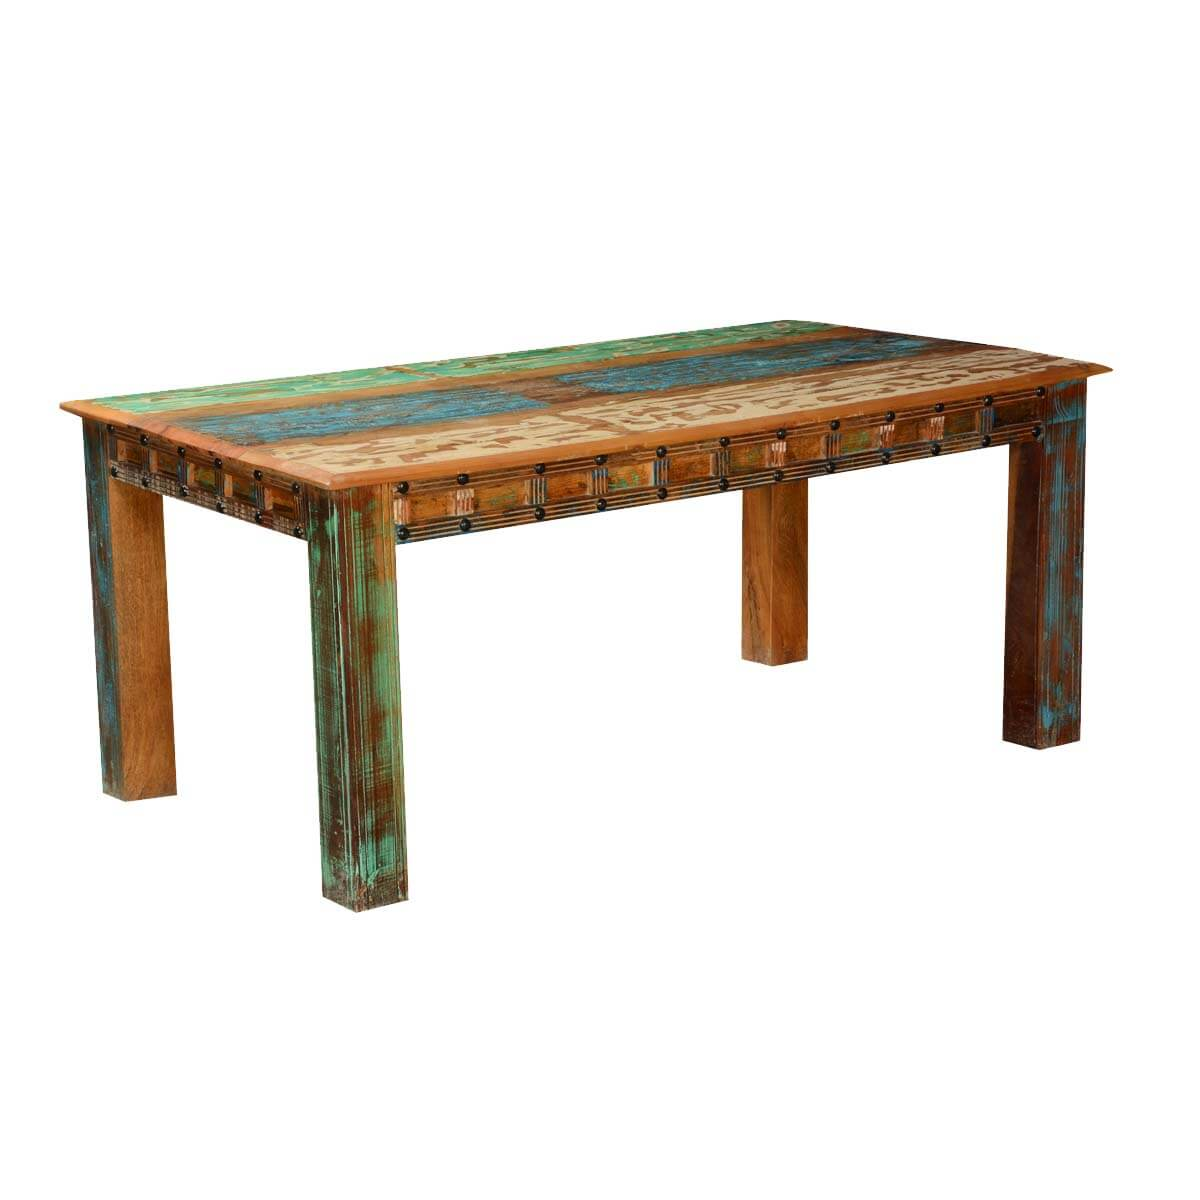 Gothic rustic rainbow reclaimed wood dining table for Hardwood dining table